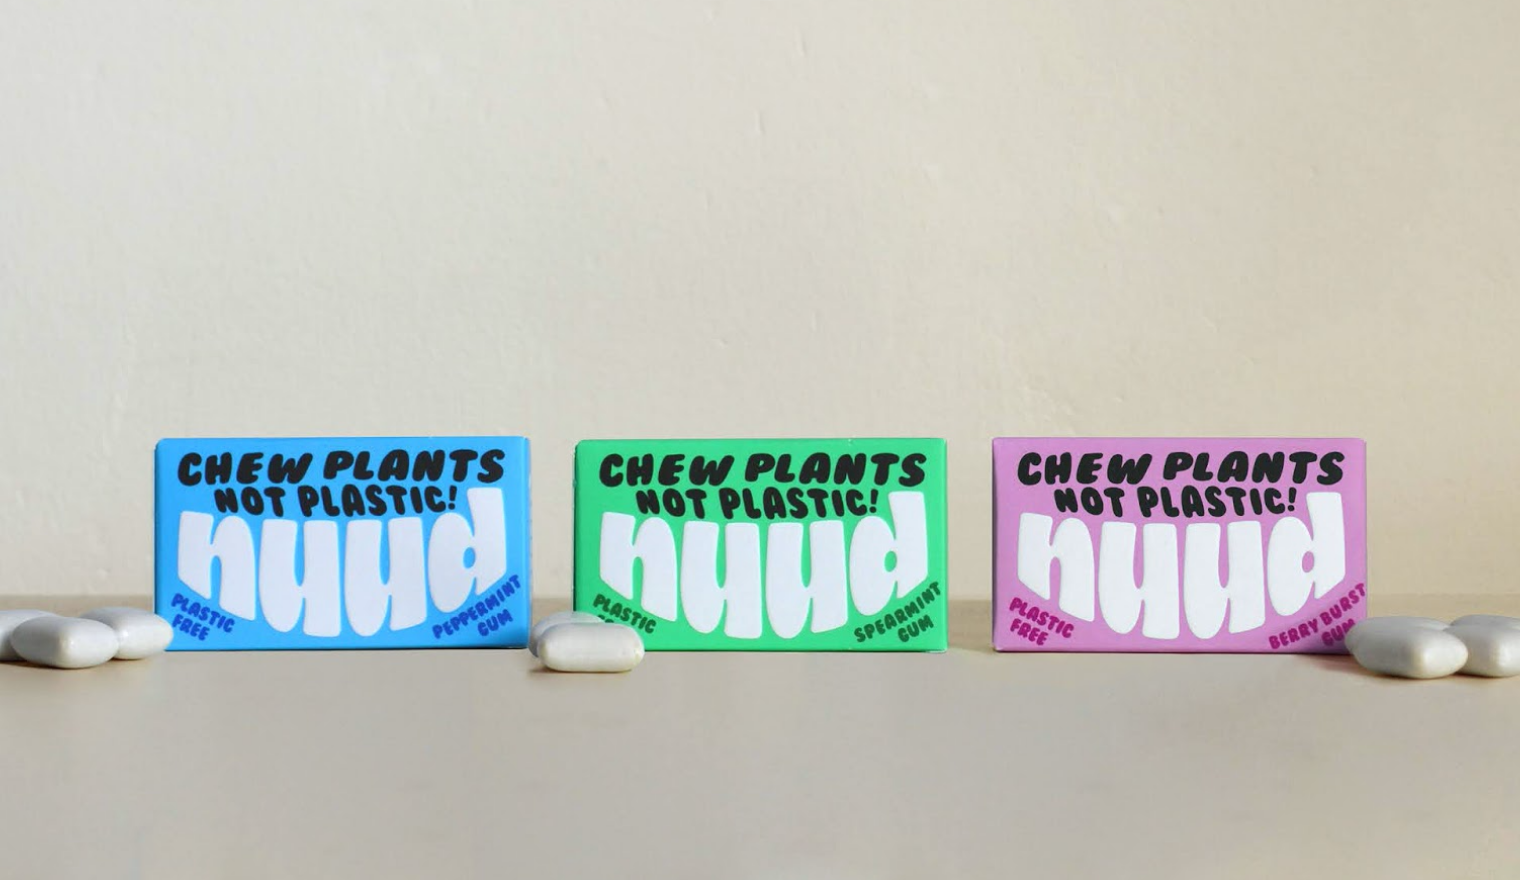 Biodegradable chewing gum Nuud